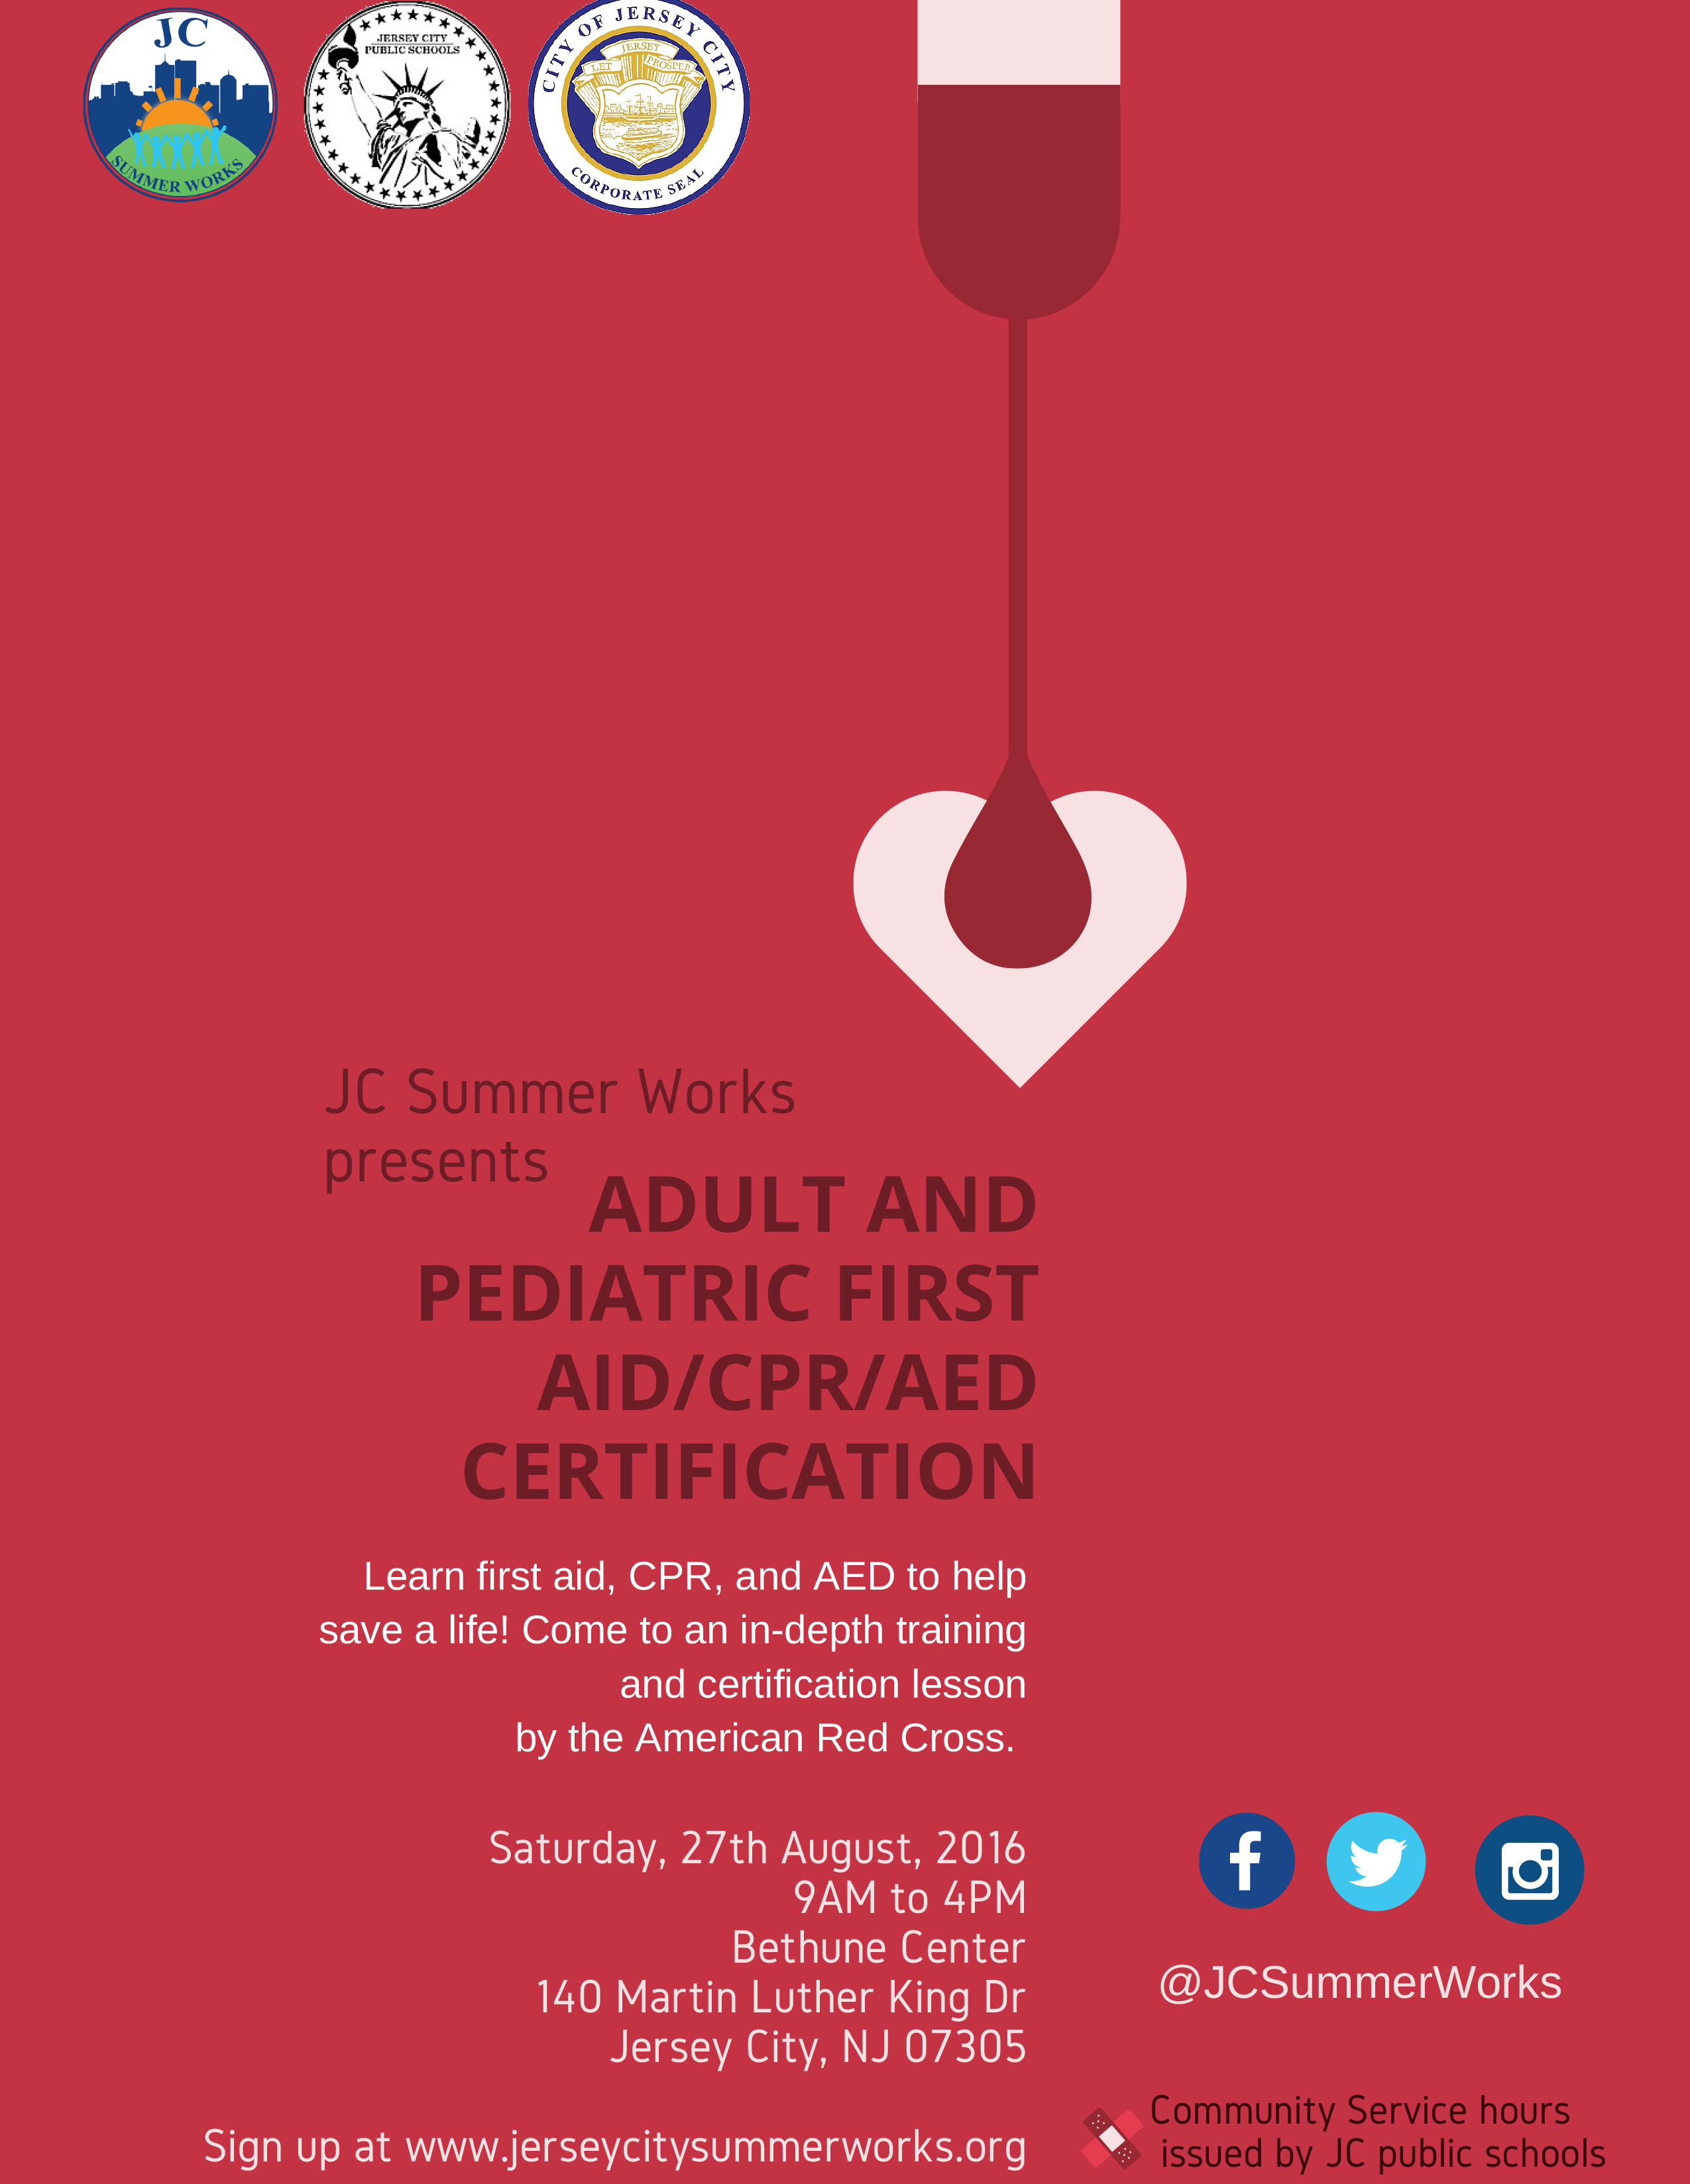 Jc Summer Works Presents Adult And Pediatric First Aidcpraed